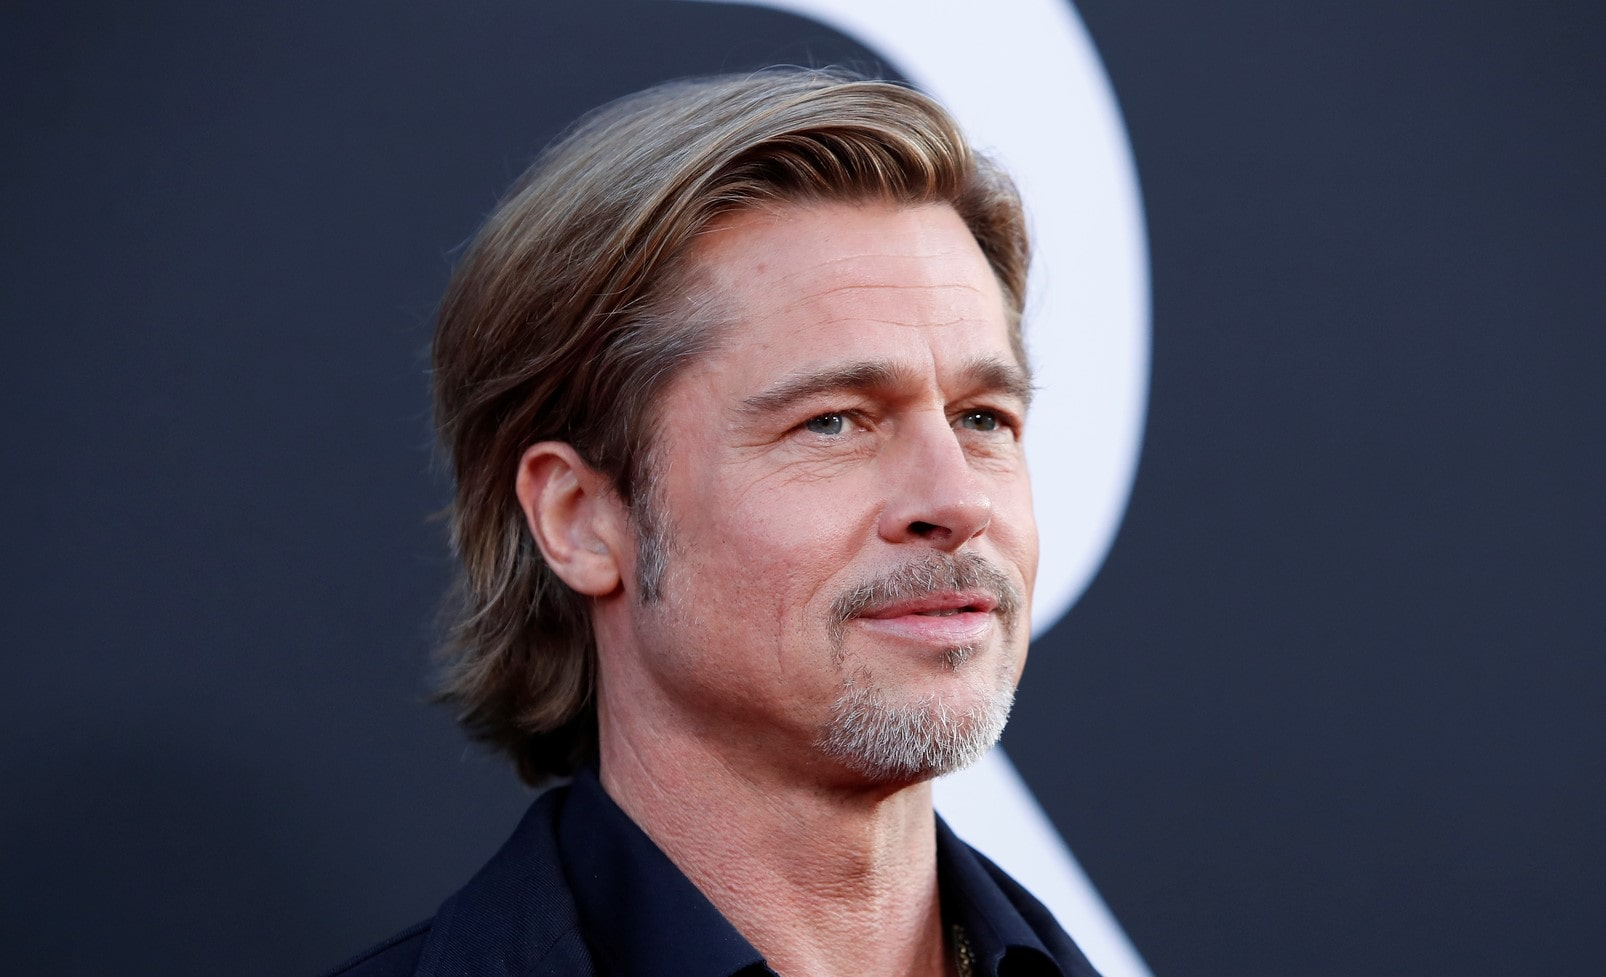 Discover if Brad Pitt had cosmetic surgery to look younger